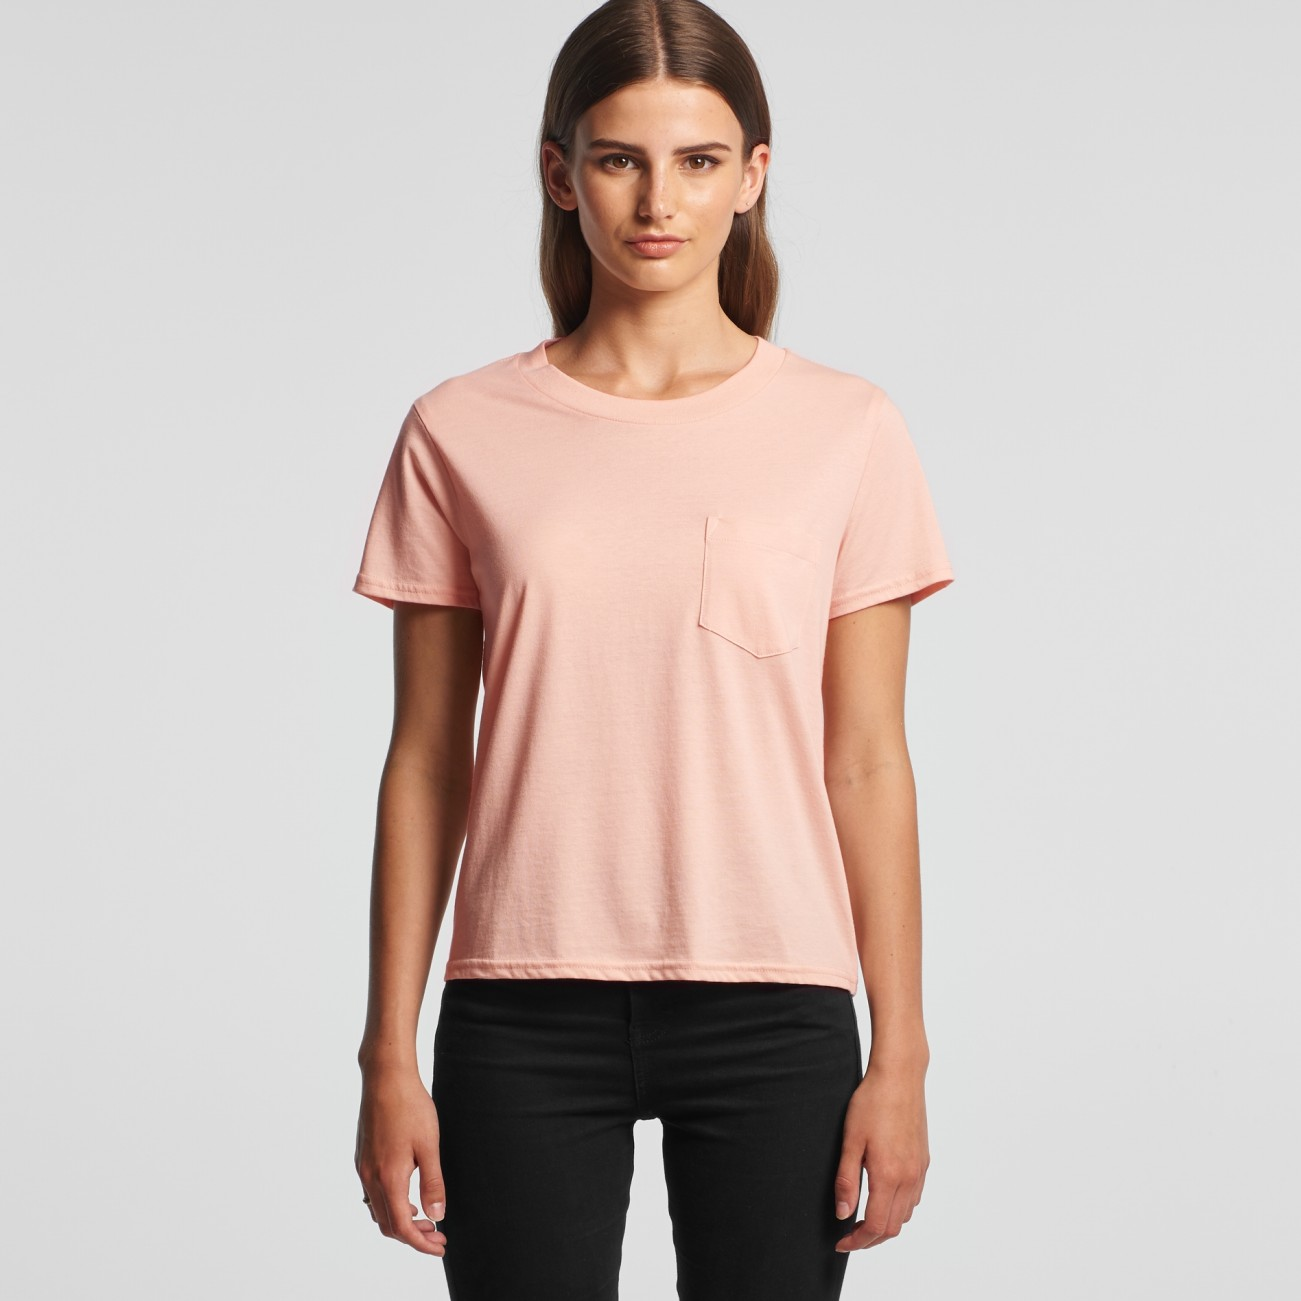 4046 WOMENS SQUARE POCKET TEE